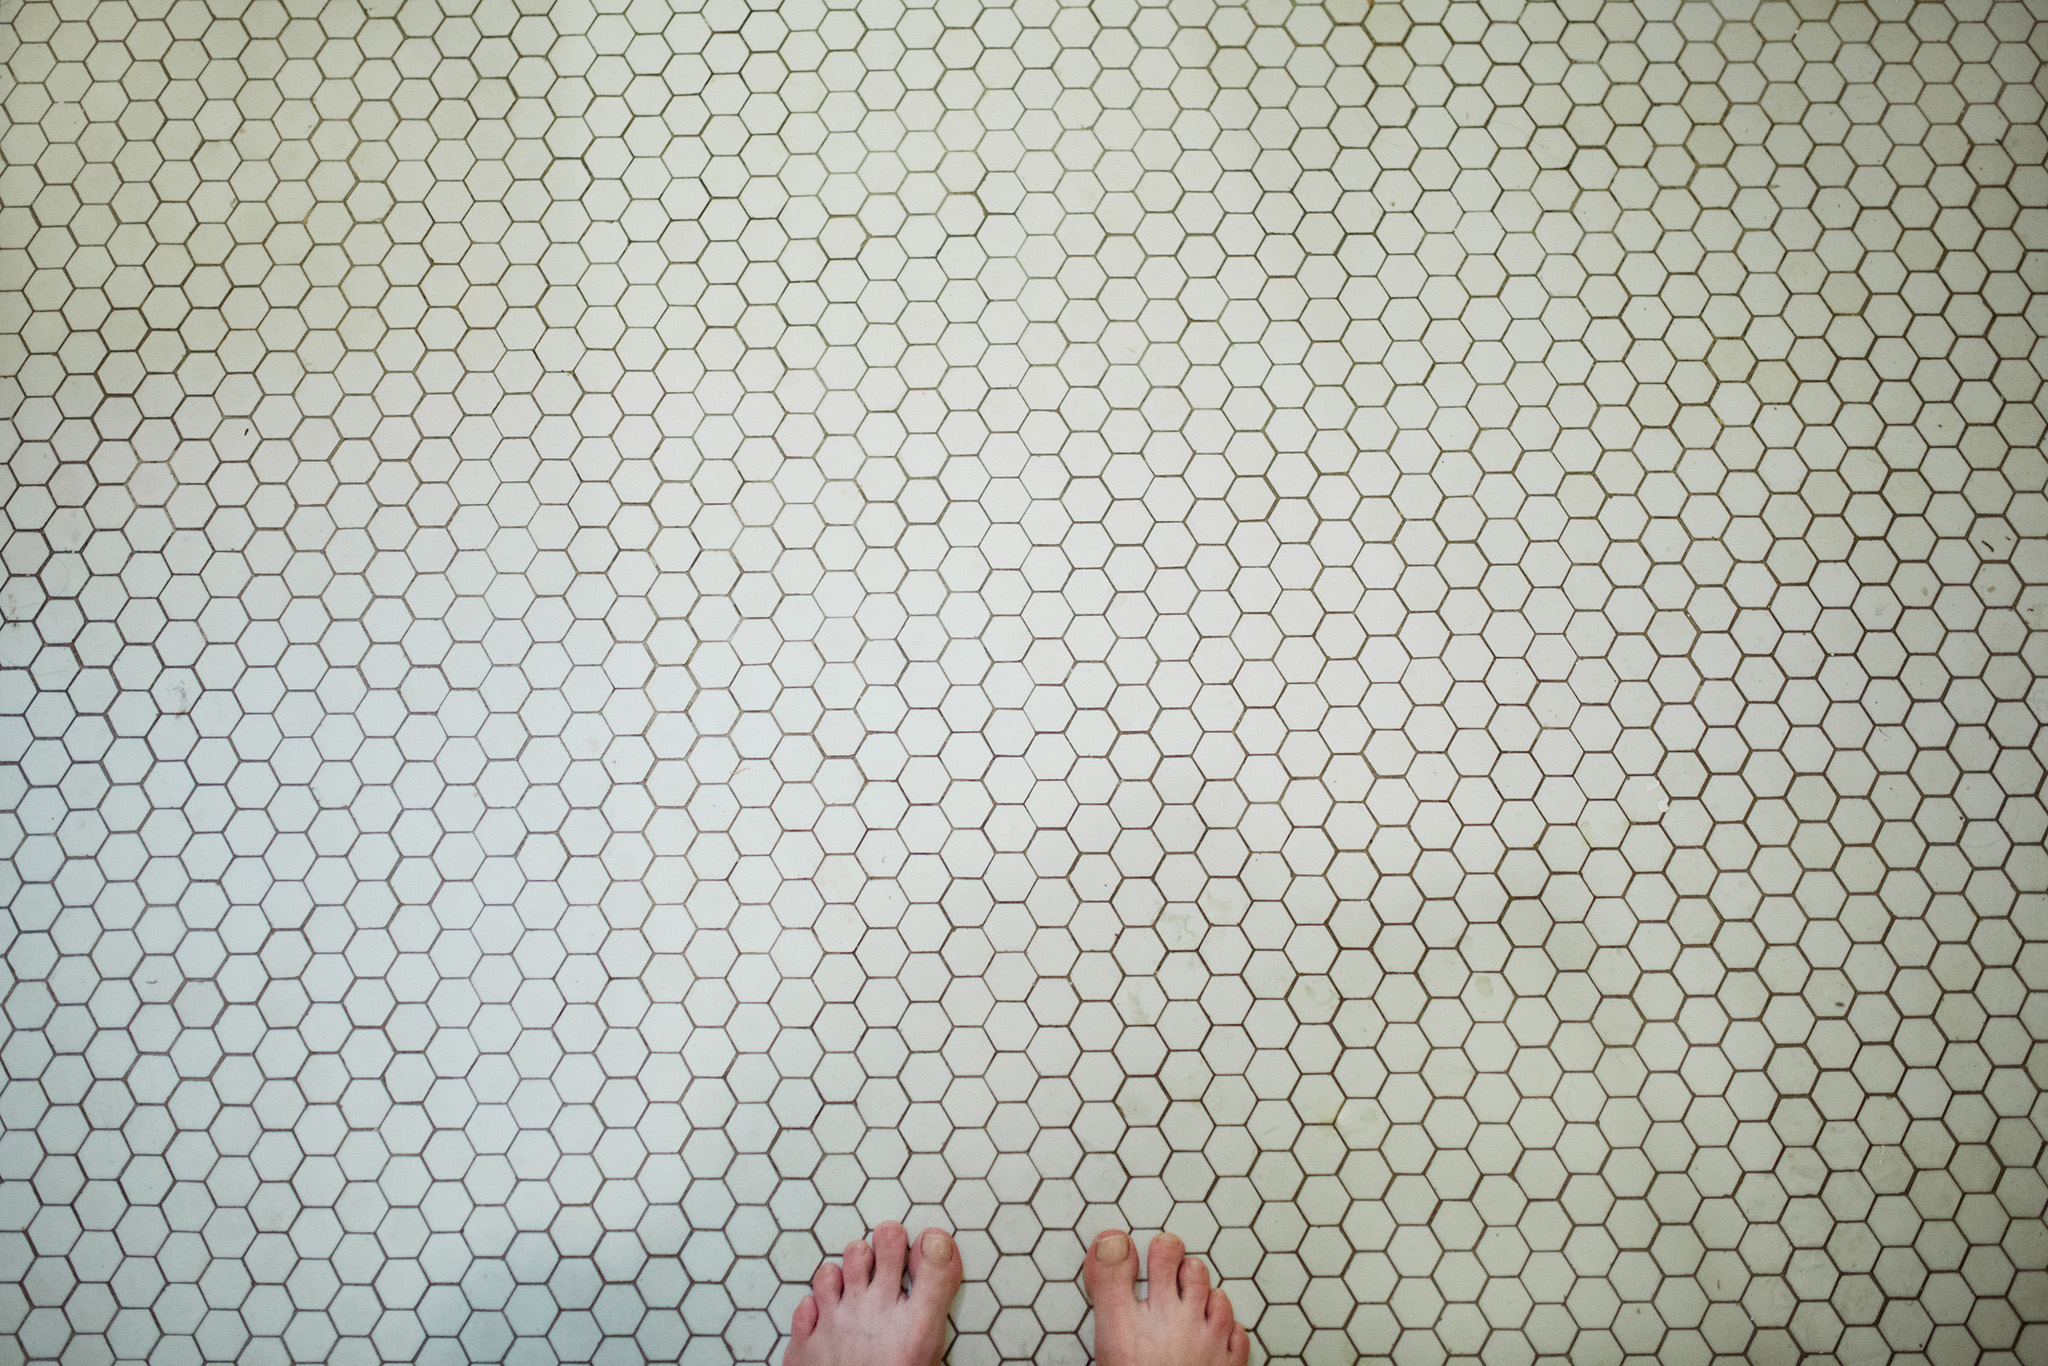 April 15: Honeycomb tiles in the upstairs bathroom.